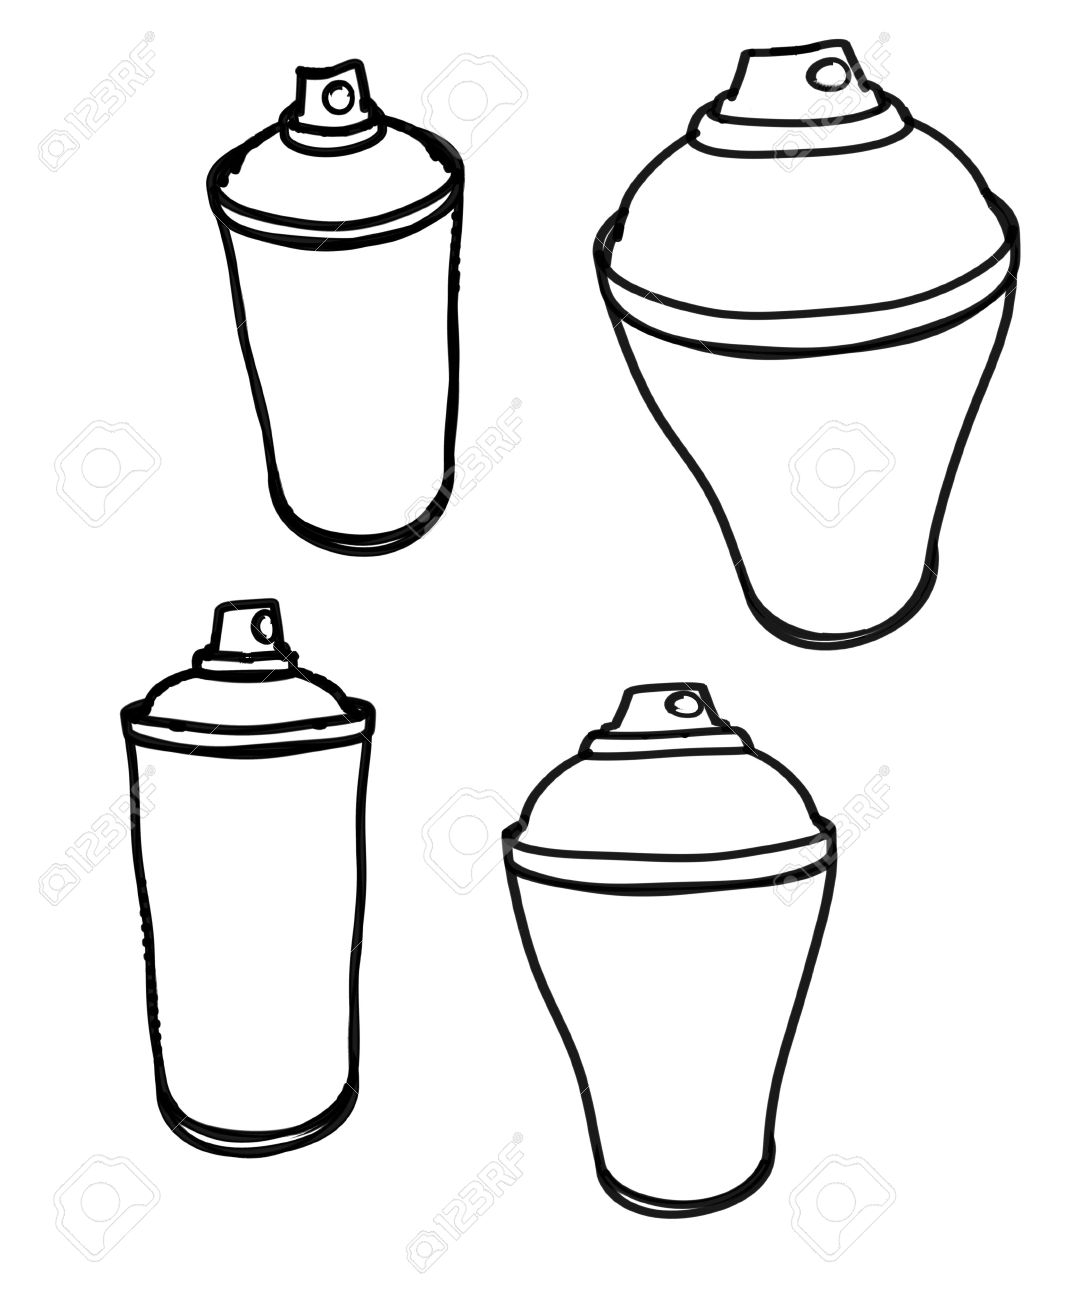 1084x1300 graffiti spray paint can drawing rough marker sketches of spray